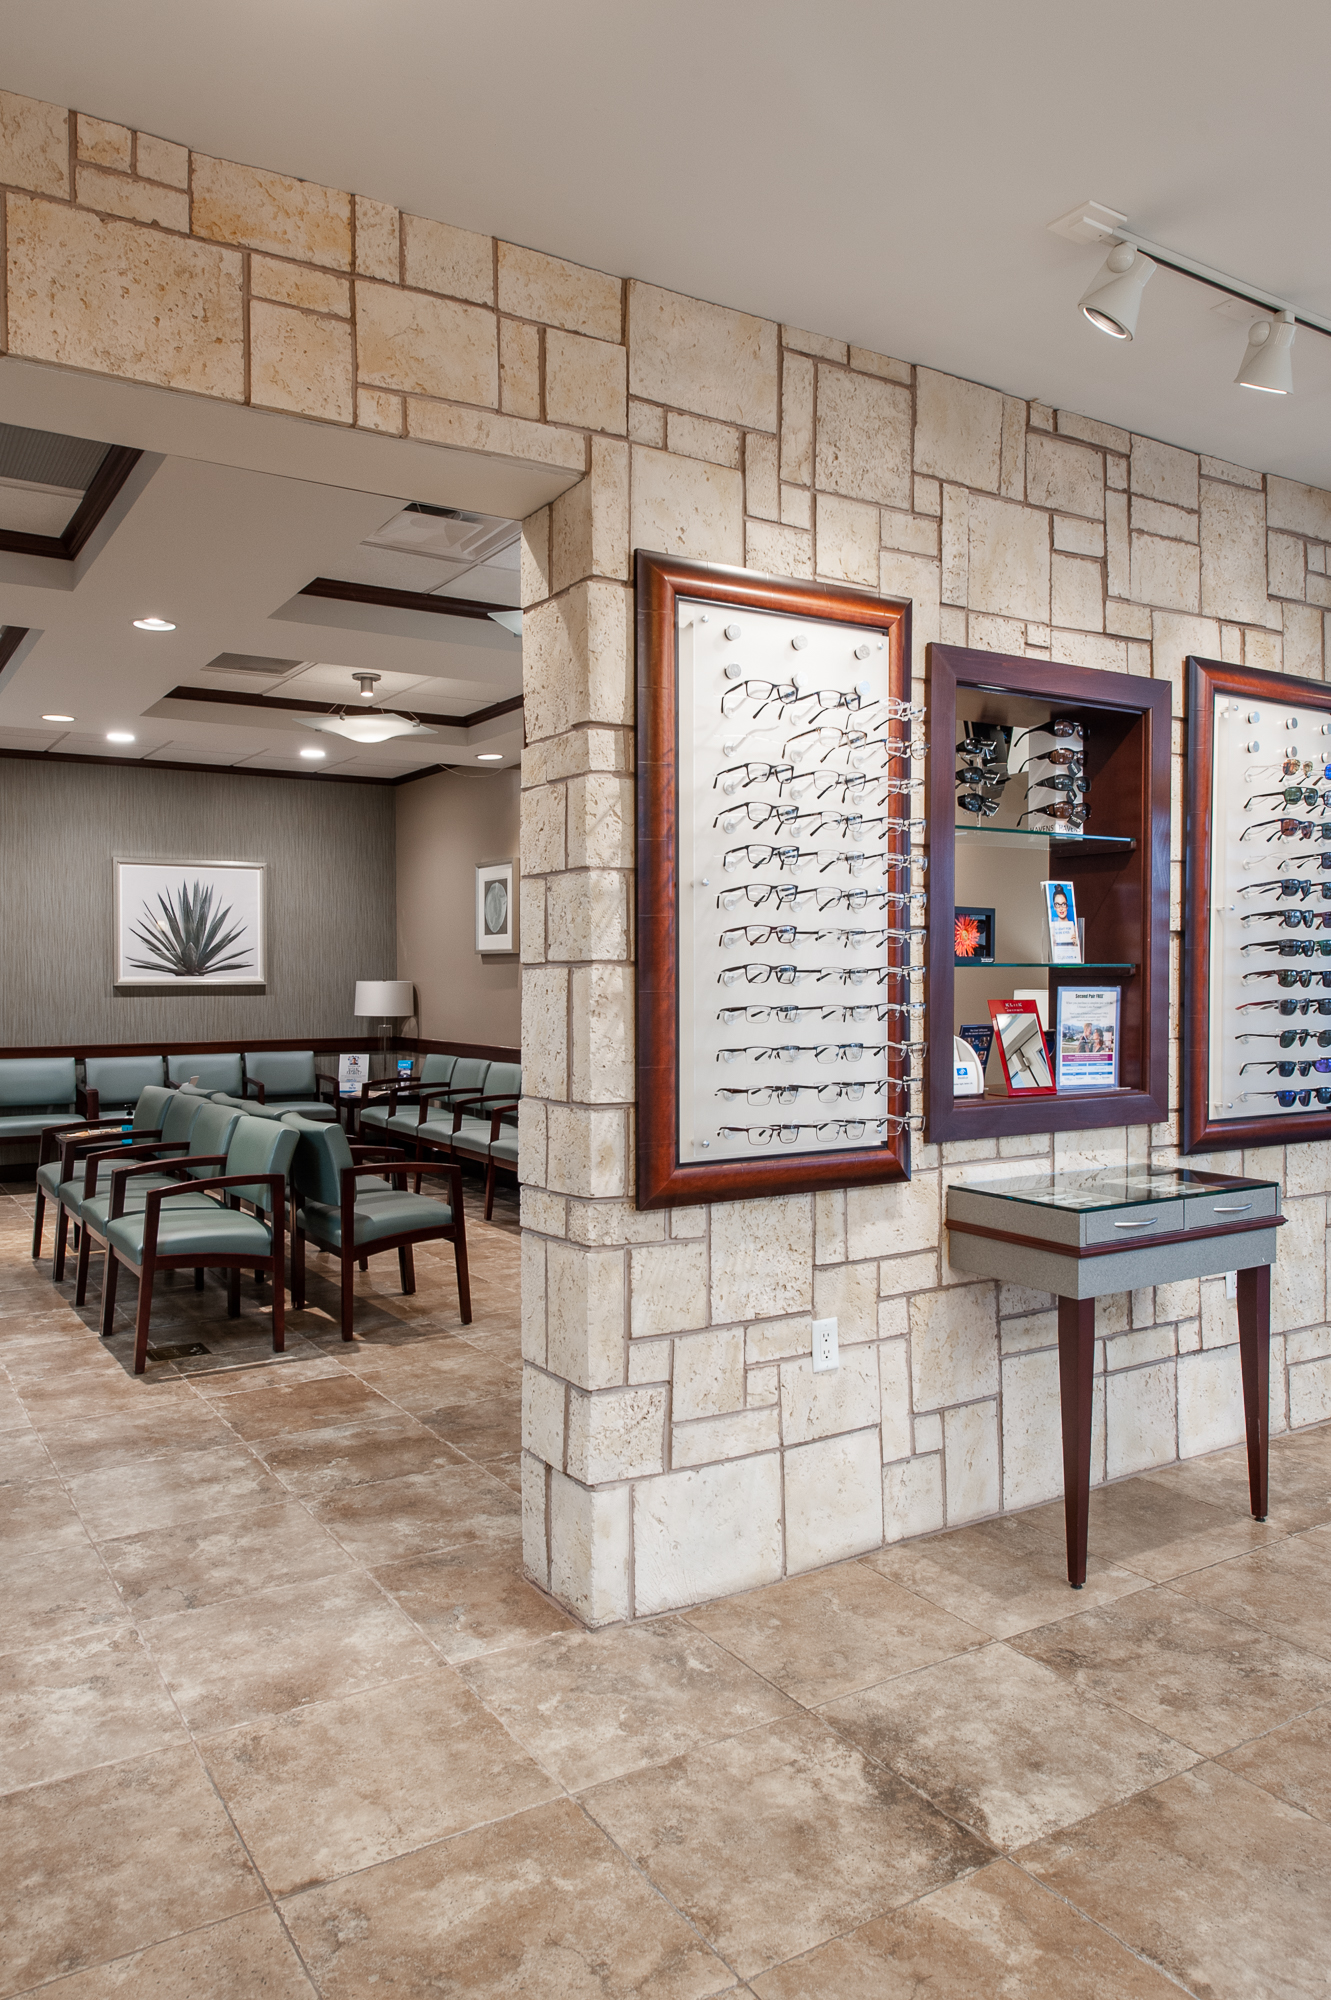 Micamy Design Studio_Interior Design_Clay Eye_Mandarin_Opthamology_Commercial_Office_Medical_Eye Care_Renovation_Crossville_Interiors_Artwork_Coastal_Crossville_Eykon8.jpg